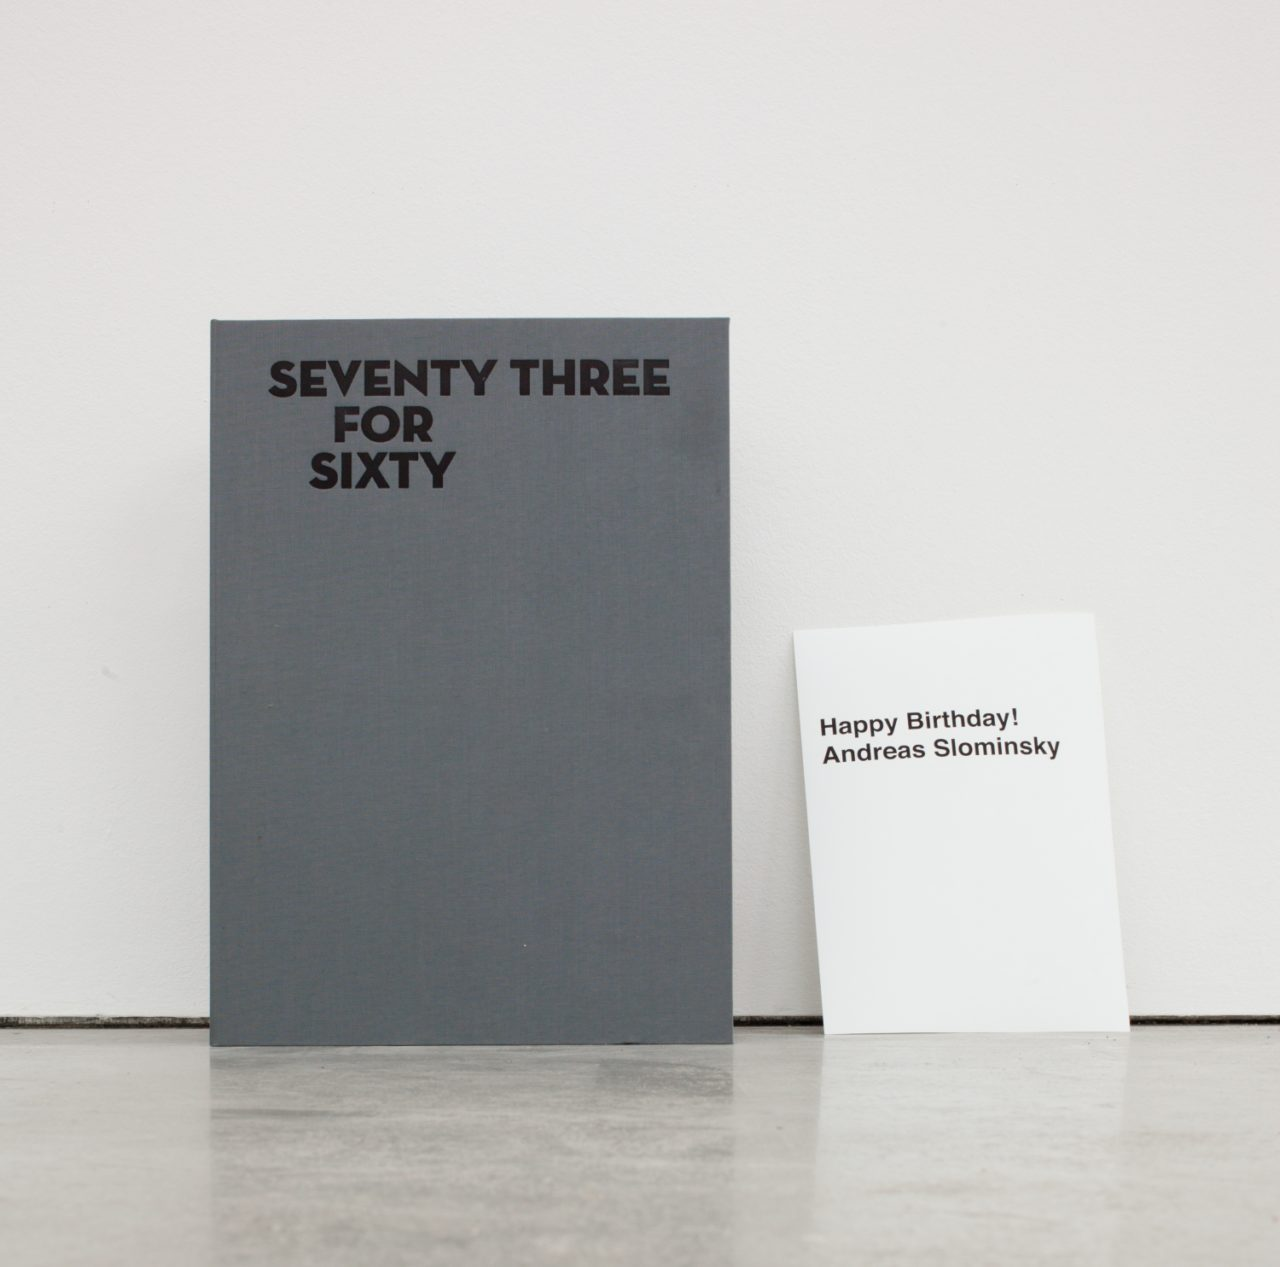 Links: Seventy Three For Sixty box; Rechts: Andreas Slominski, untitled (2011)